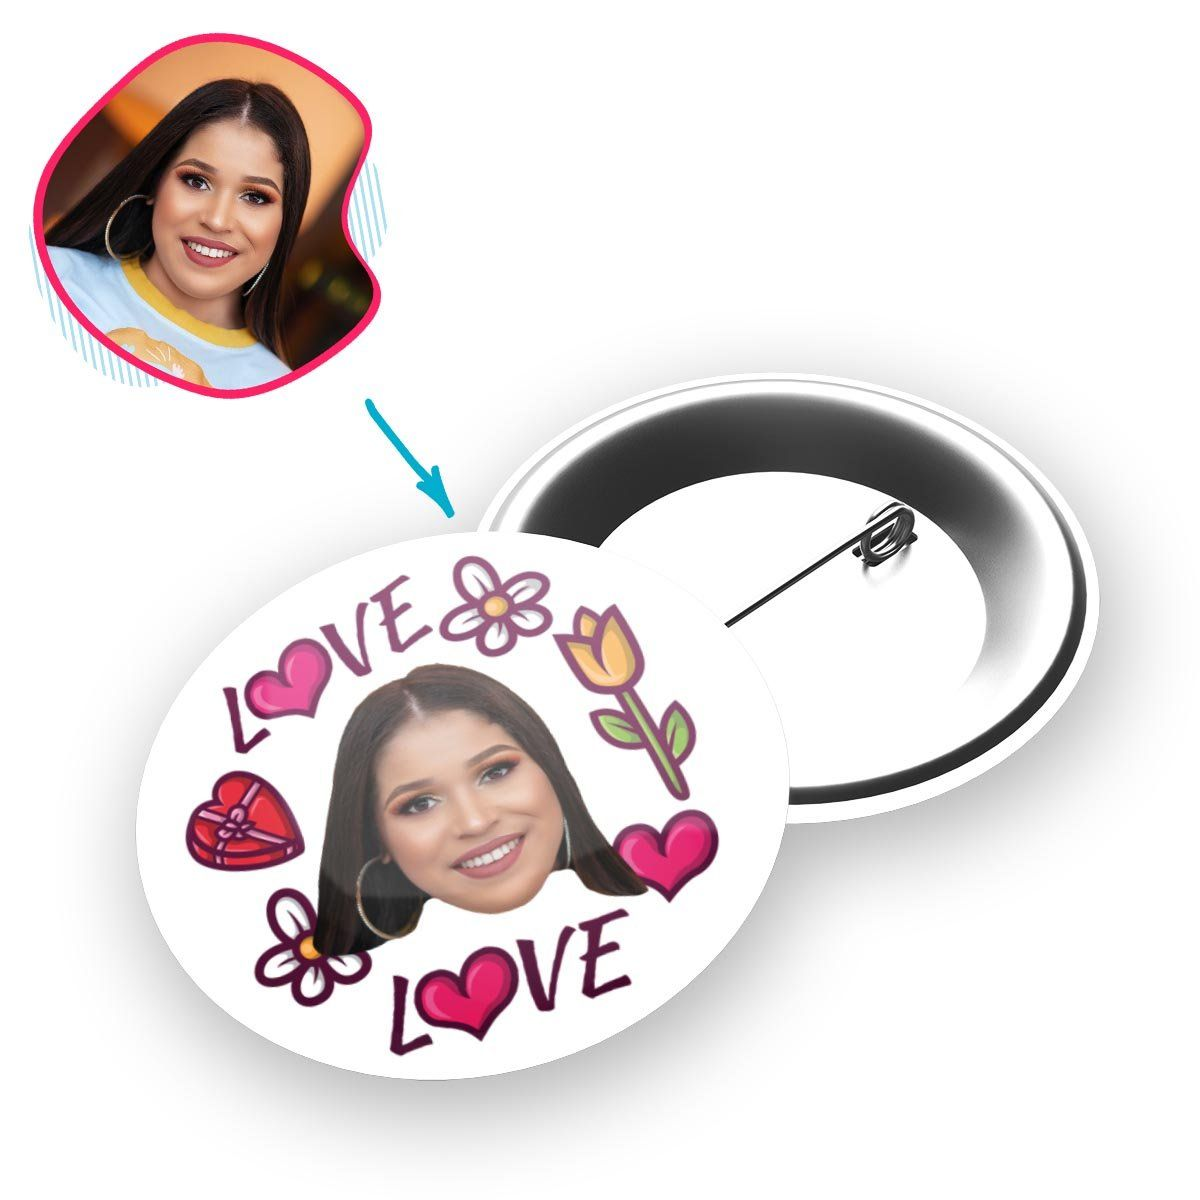 white Hearts and Flowers pin personalized with photo of face printed on it